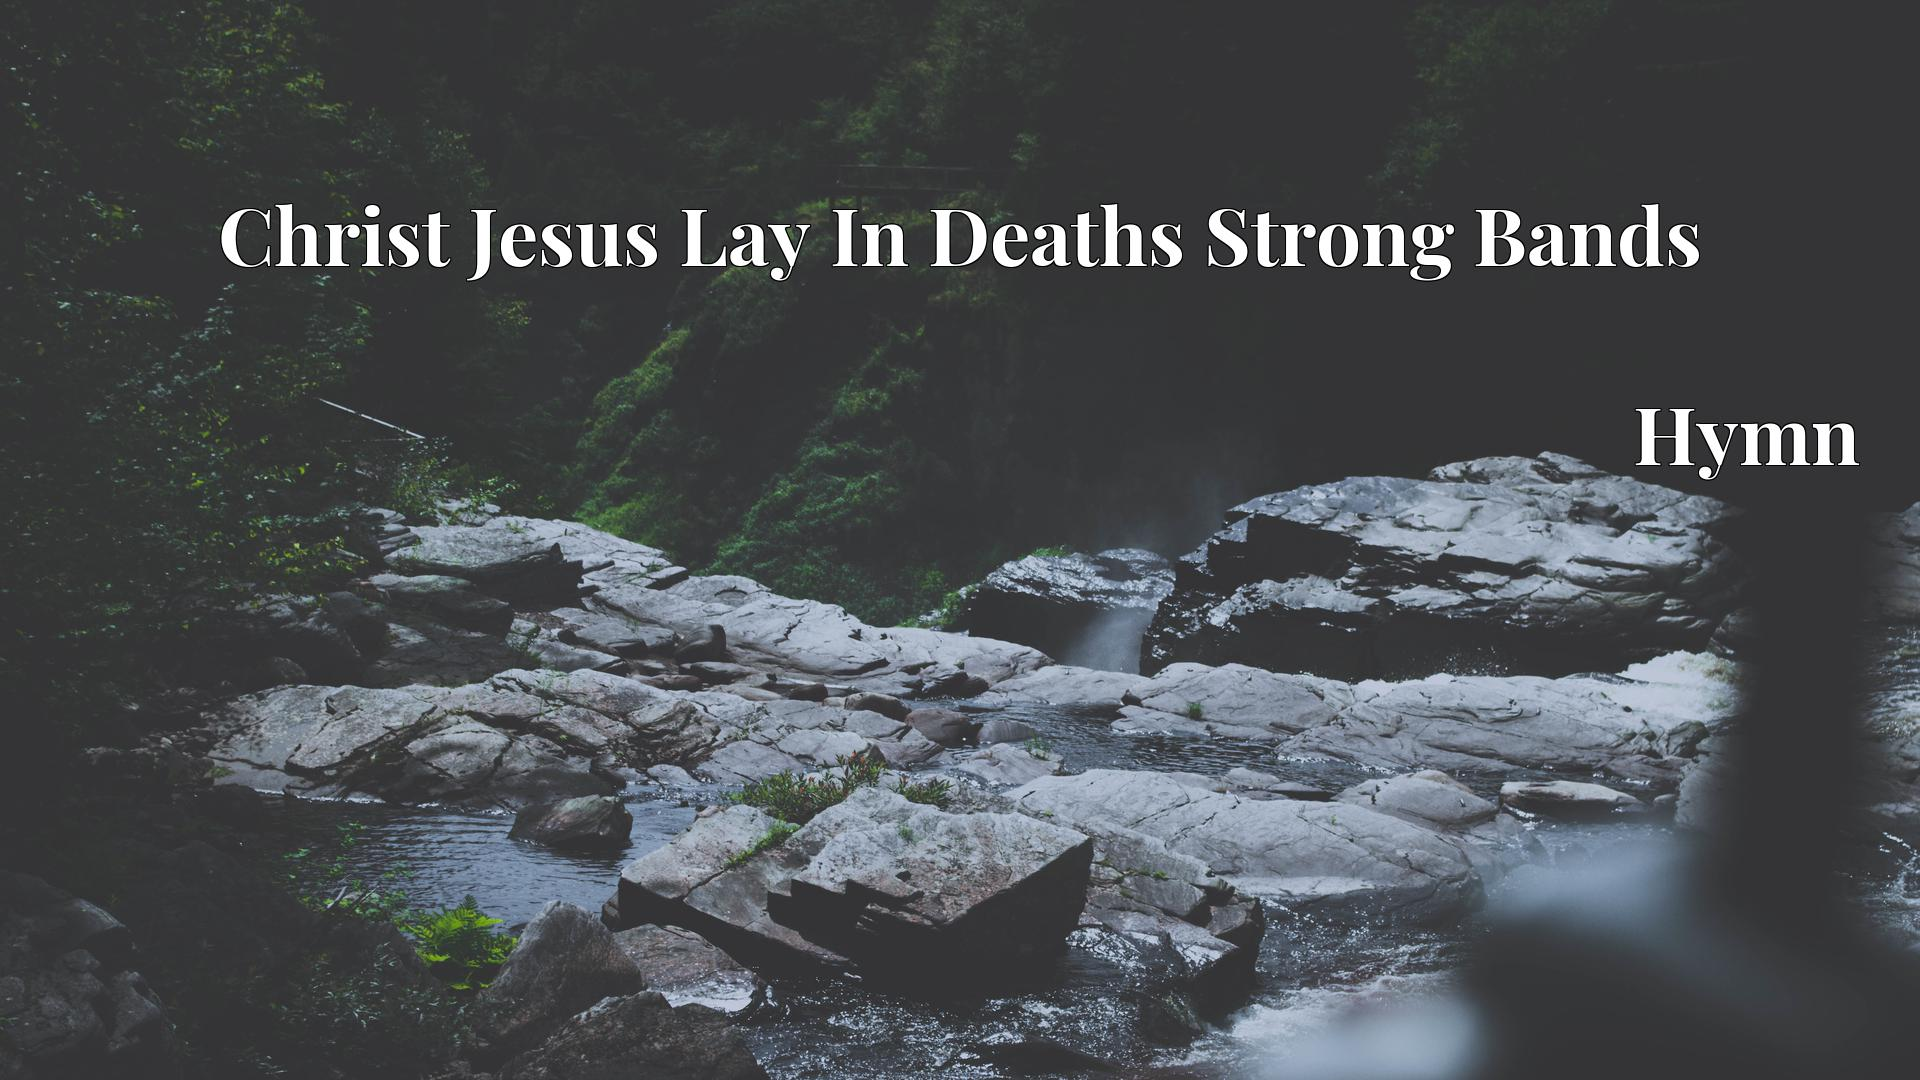 Christ Jesus Lay In Deaths Strong Bands - Hymn